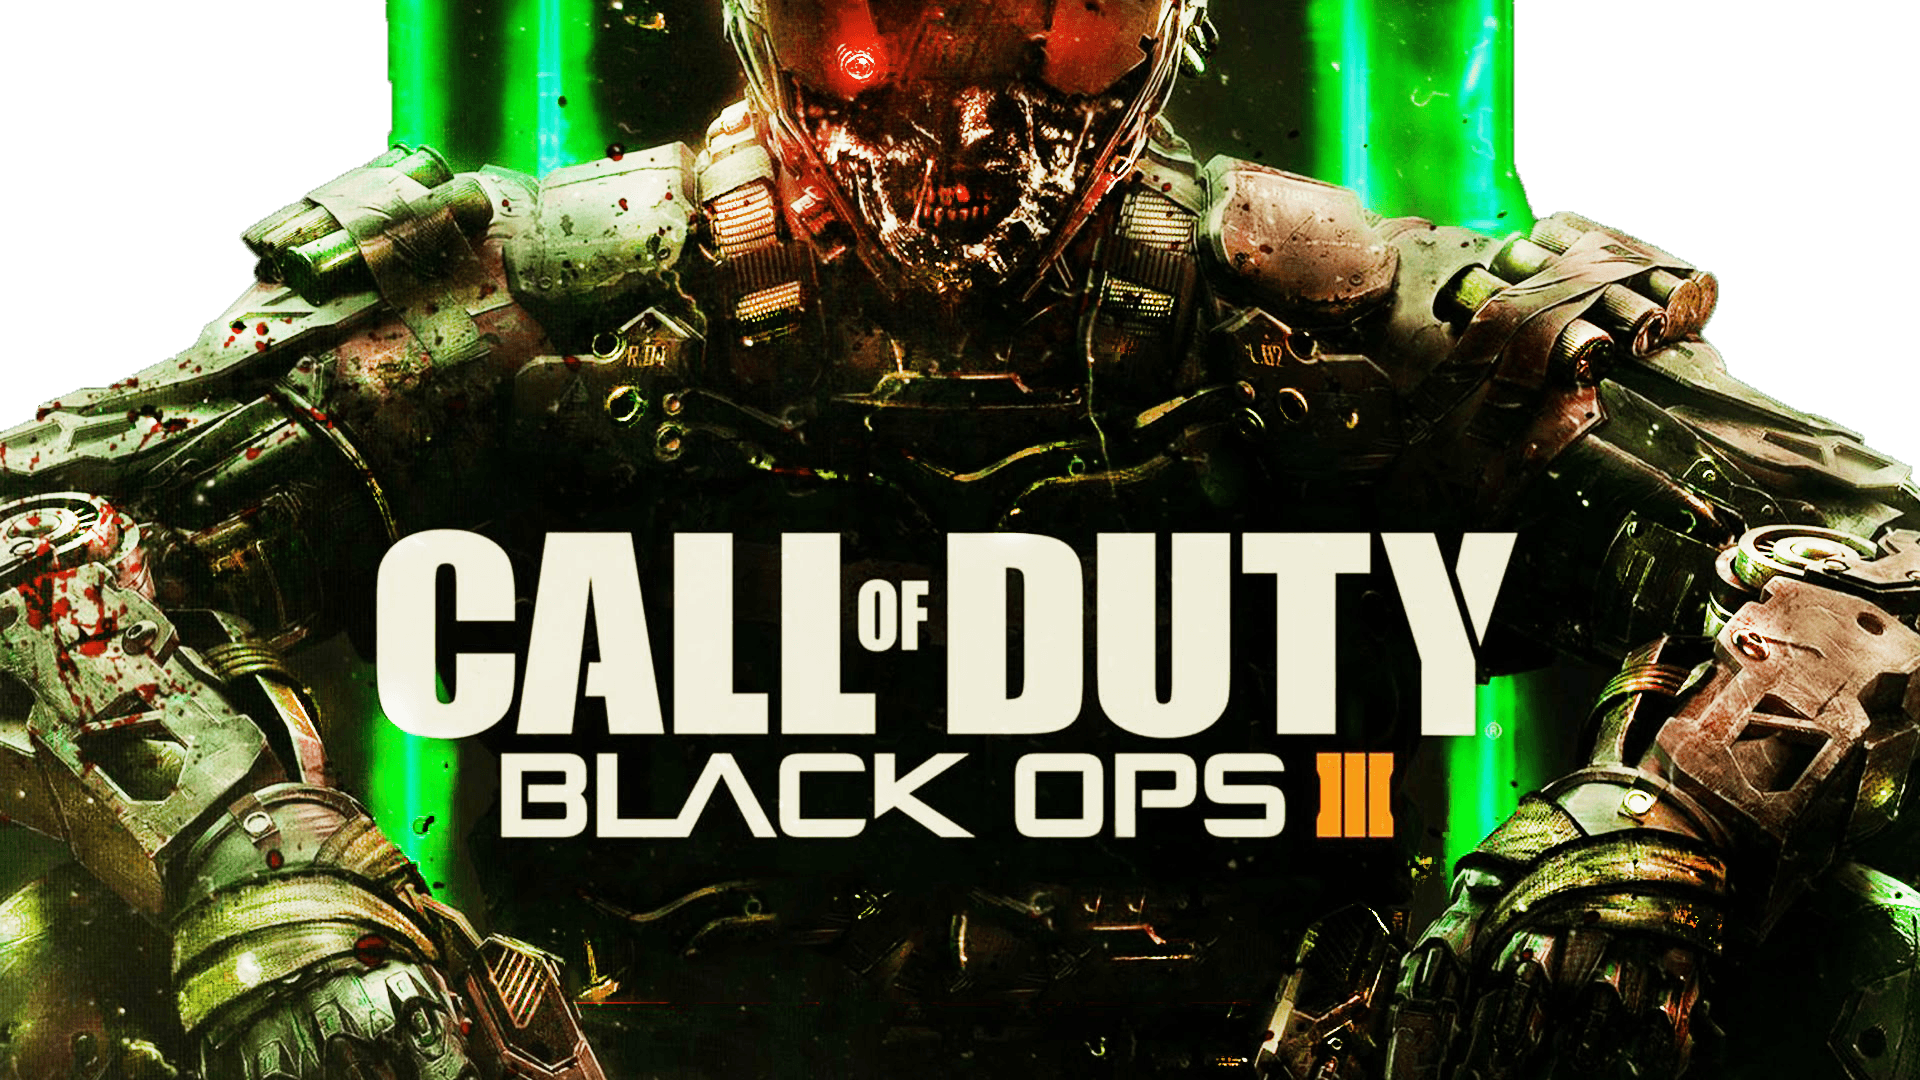 Black Ops 3 Zombies Wallpaper Data Src Full 685142 Cool Call Of Duty Black Ops 3 3117949 Hd Wallpaper Backgrounds Download